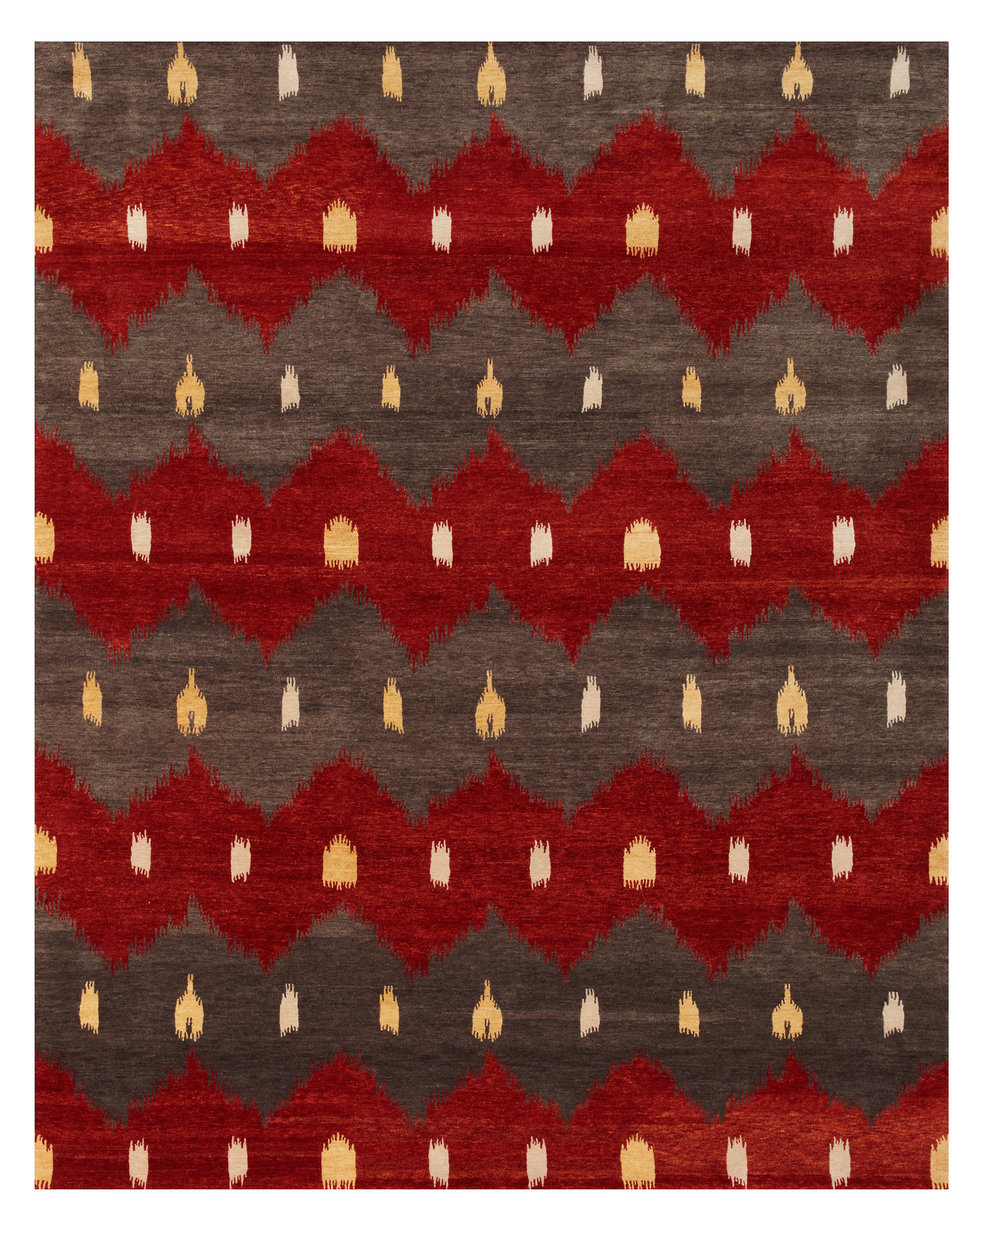 Ikat - Chocolate.jpg